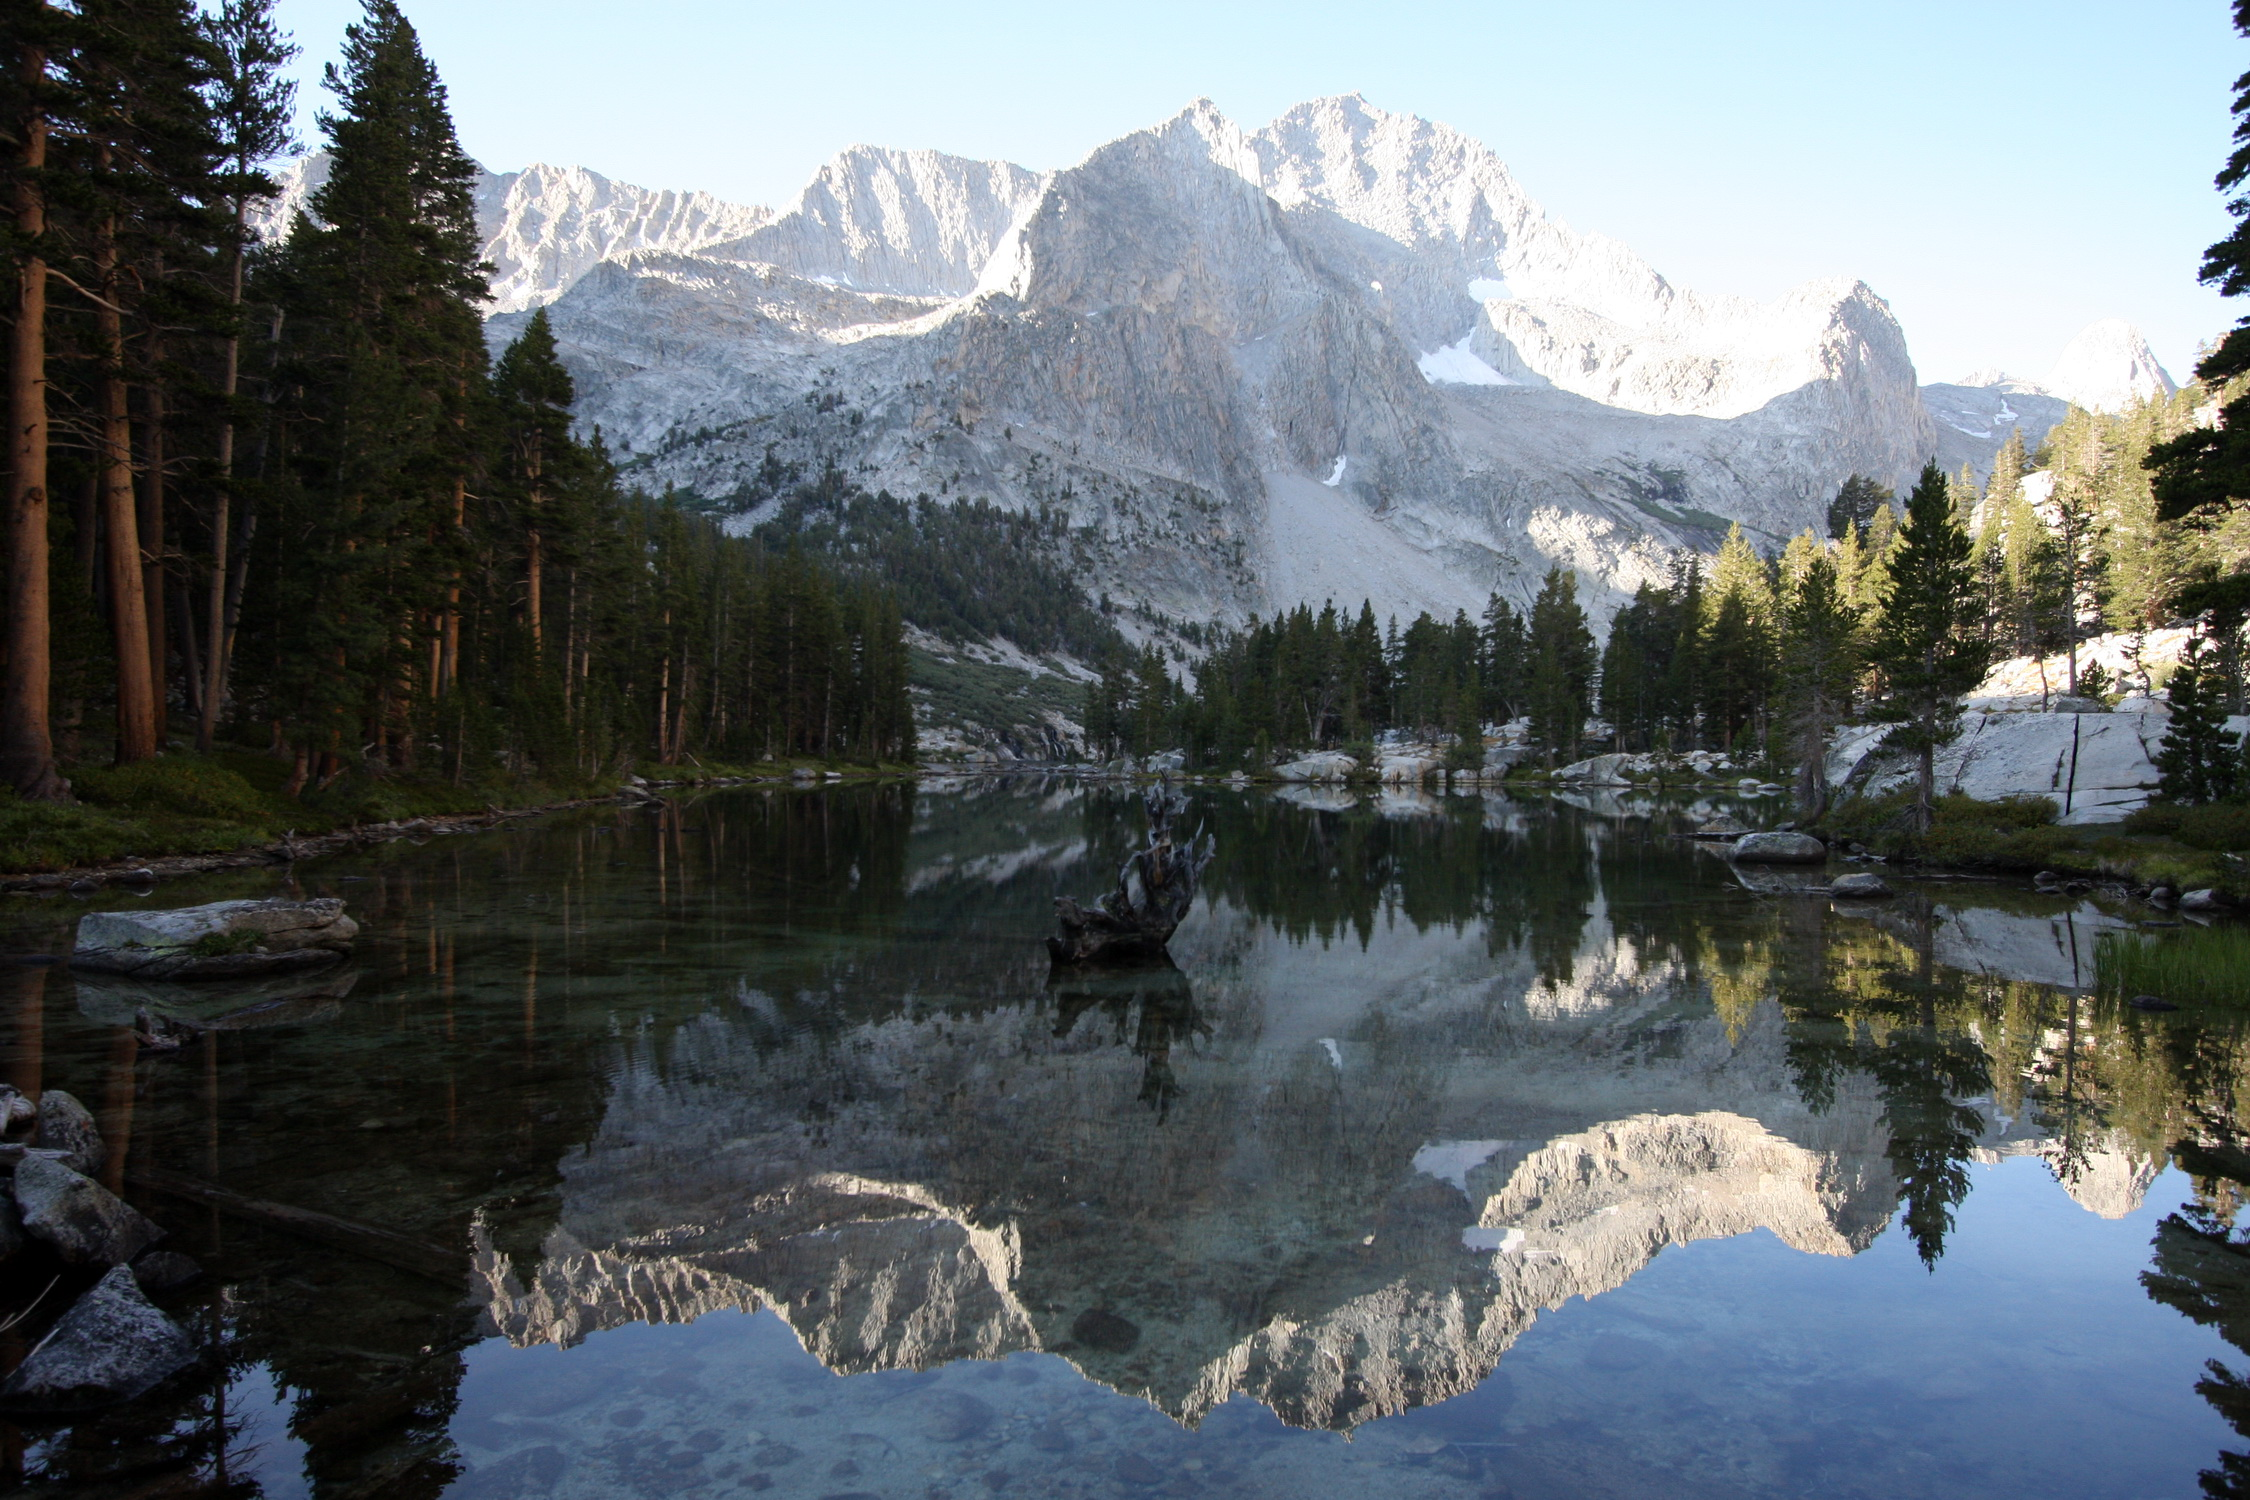 Connu Sequoia National Park - National Park in California - Thousand Wonders JA91